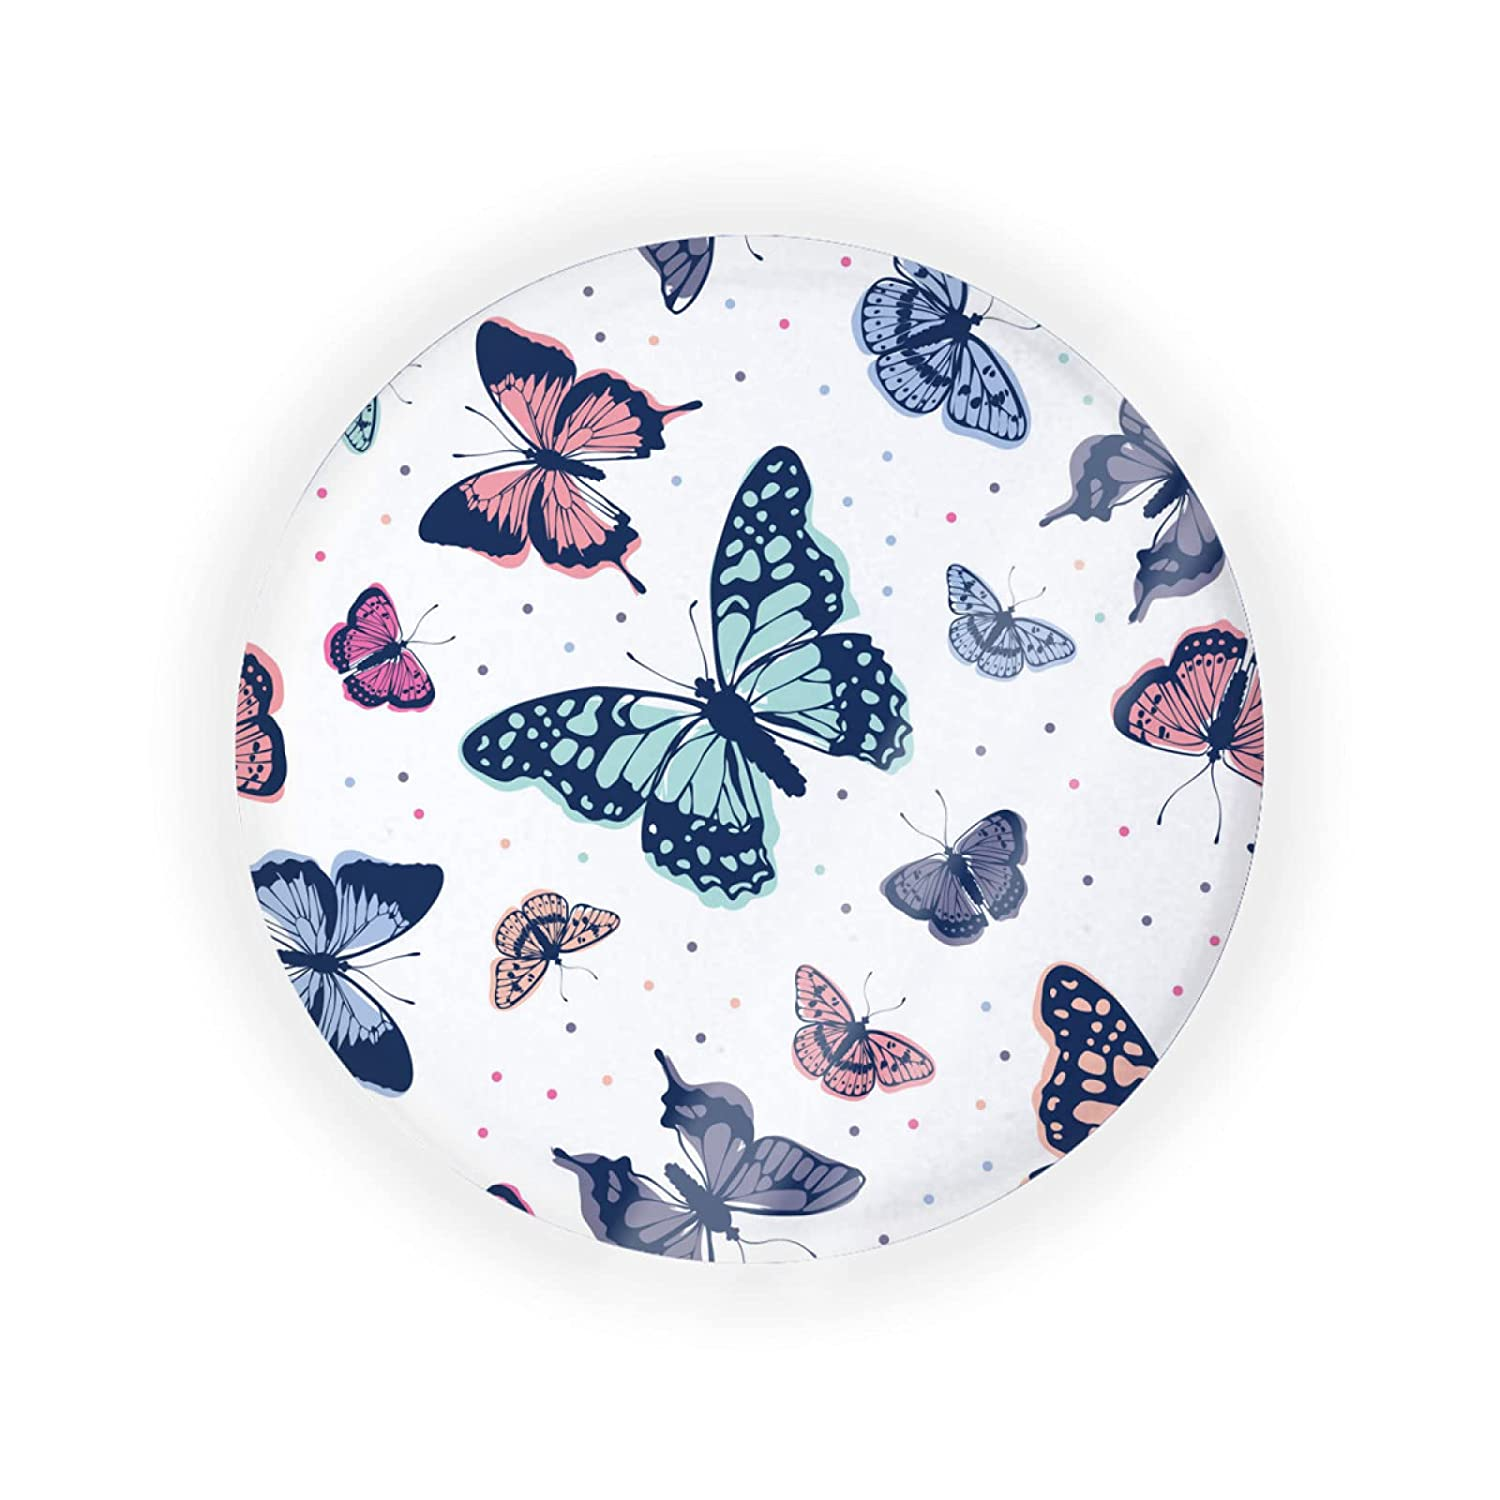 ZXZNC Empty Portable Air New Orleans Mall Cushion Colorful 1 year warranty Box Puff Butterfly On